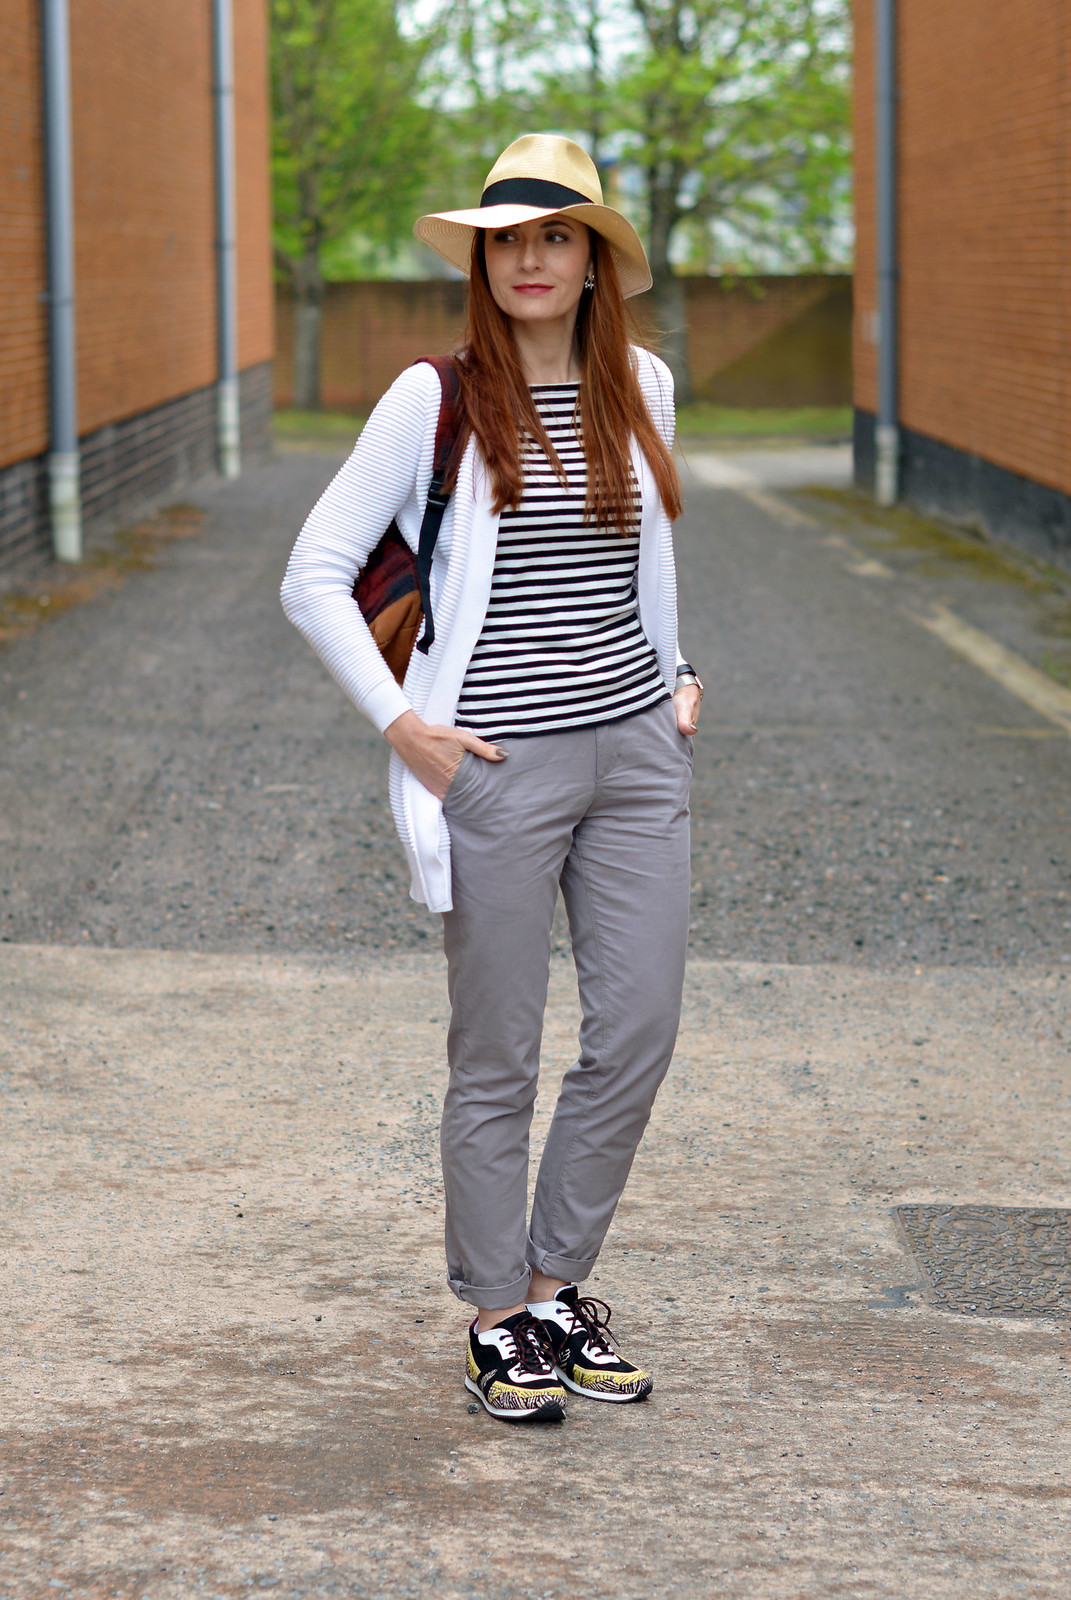 Spring style | Straw fedora, Breton stripes, chinos and multi coloured sneakers